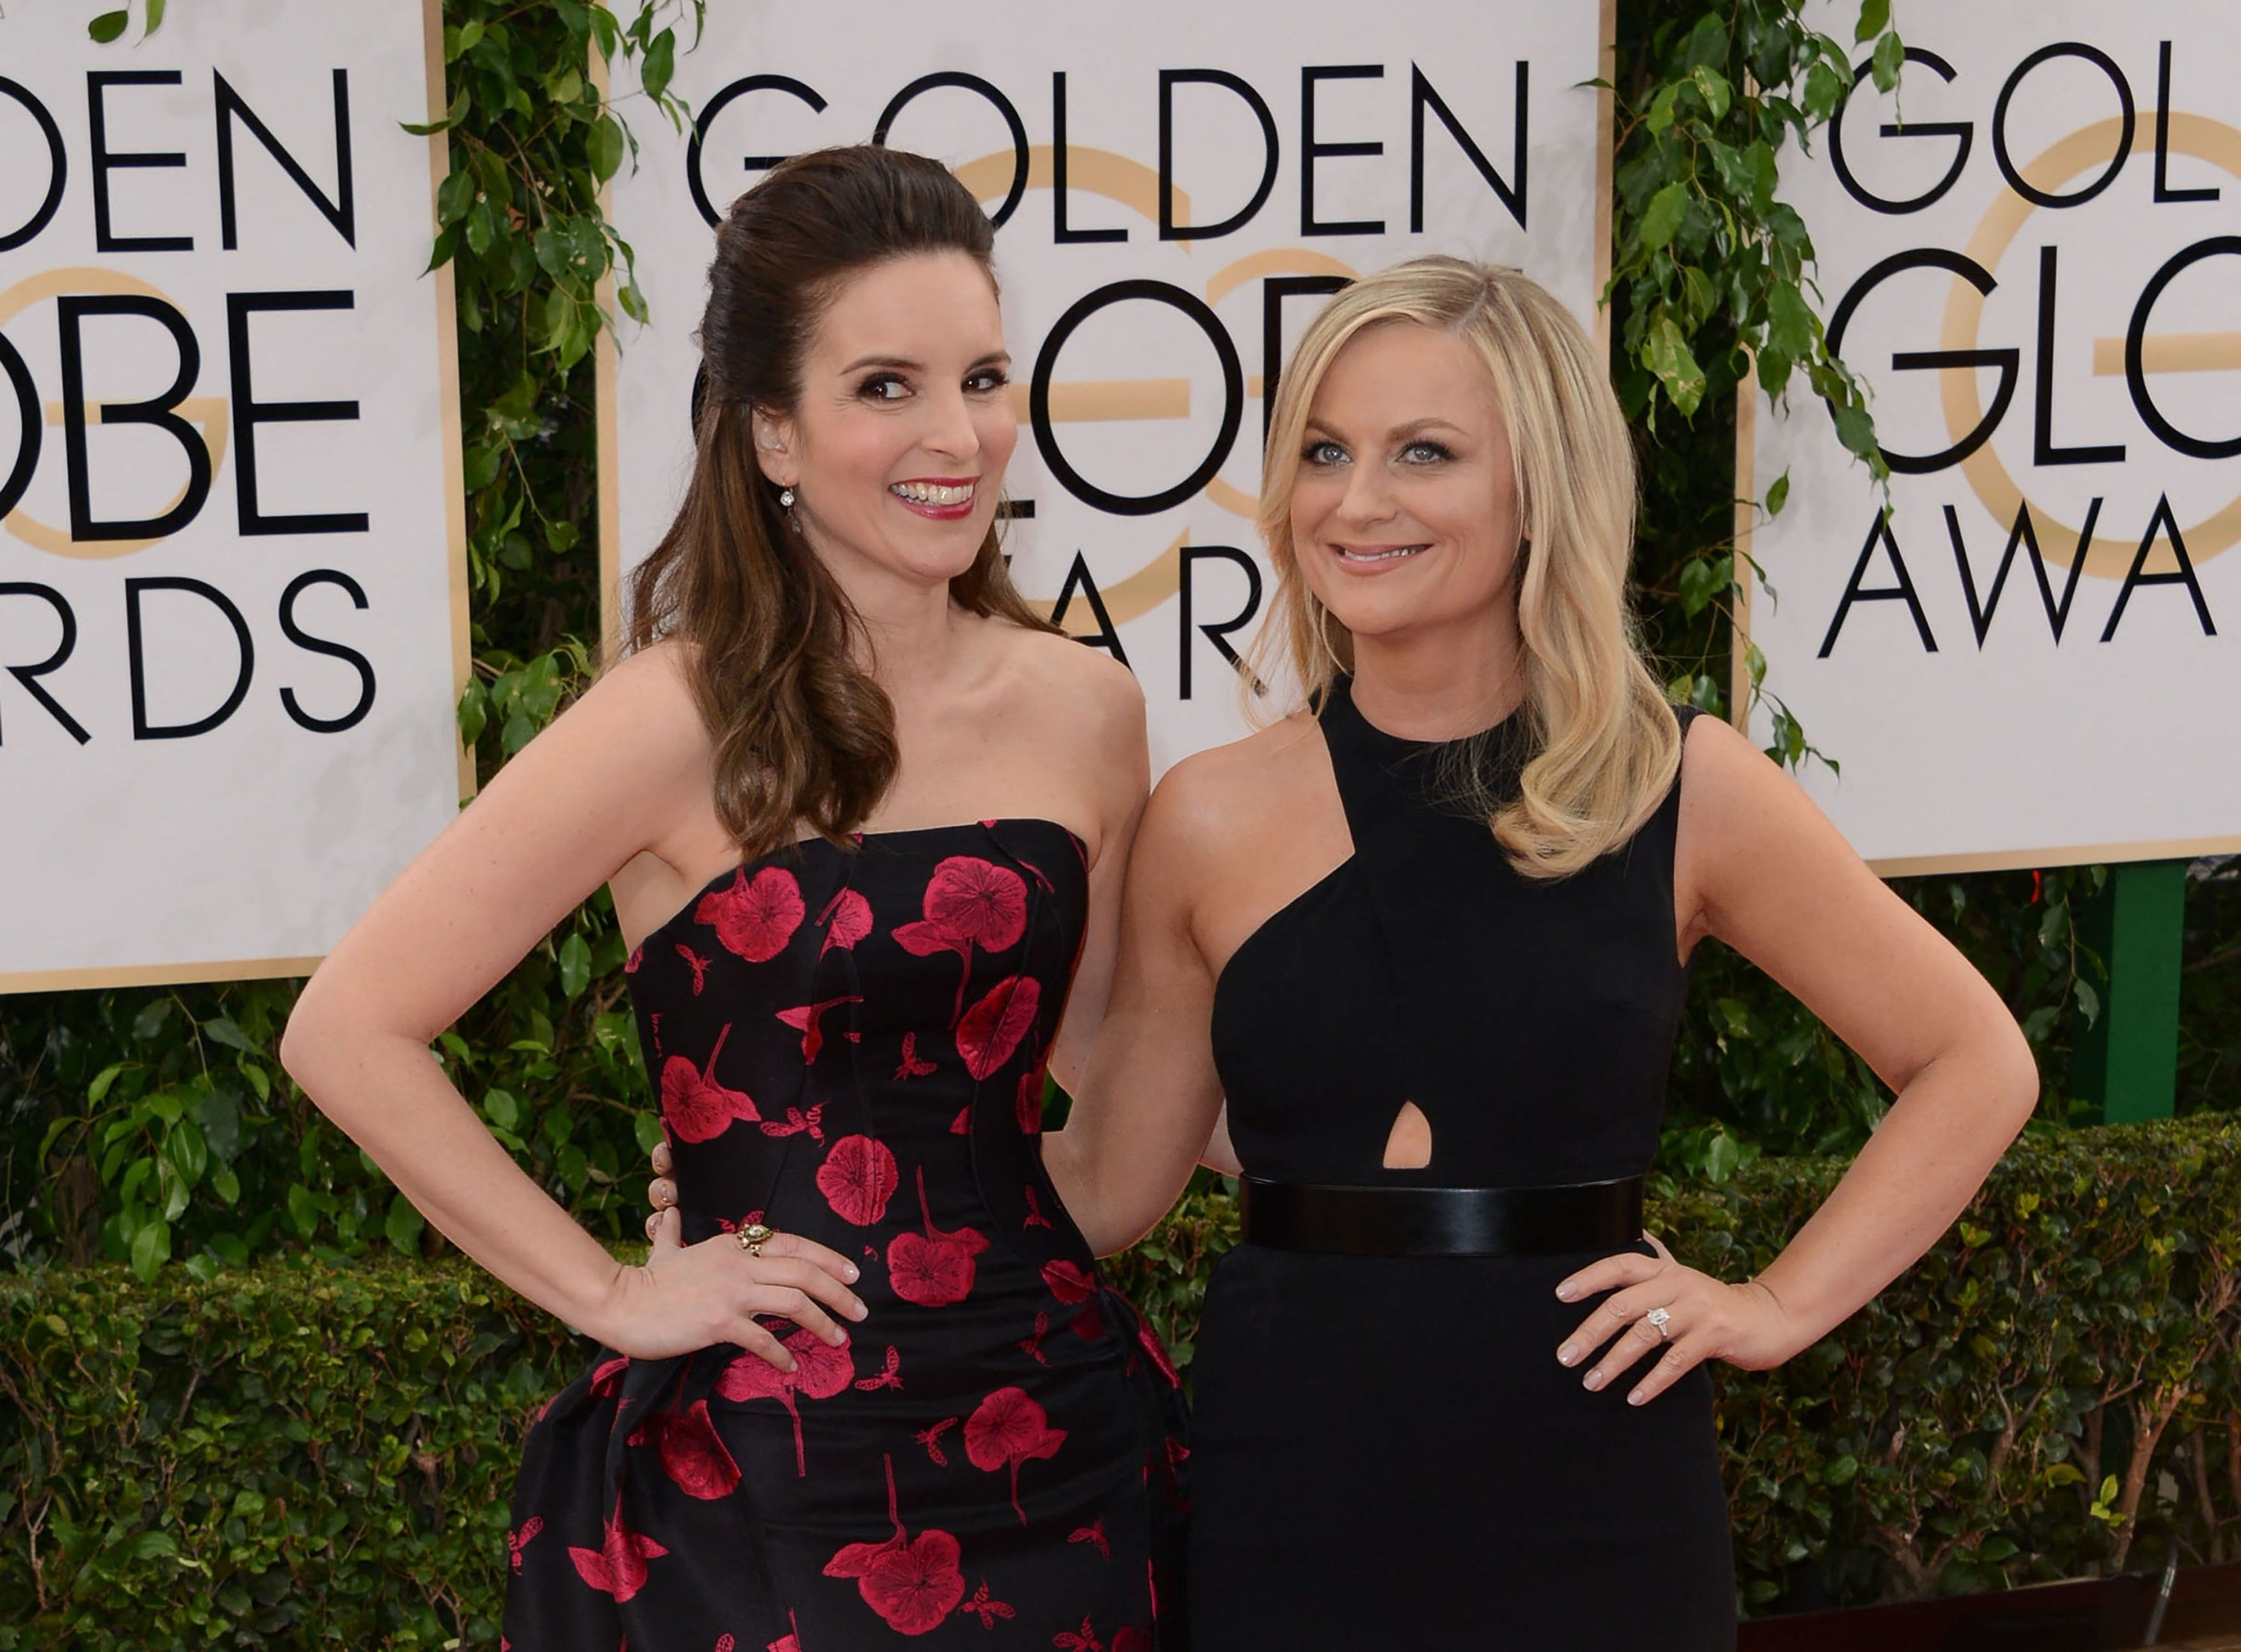 This photo shows actress Tina Fey (L) and Amy Poehler (R) arriving for the 71st Golden Globe Awards held at the Beverly Hilton hotel in Beverly Hills, California, the U.S., Jan. 12, 2014. (AFP Photo)